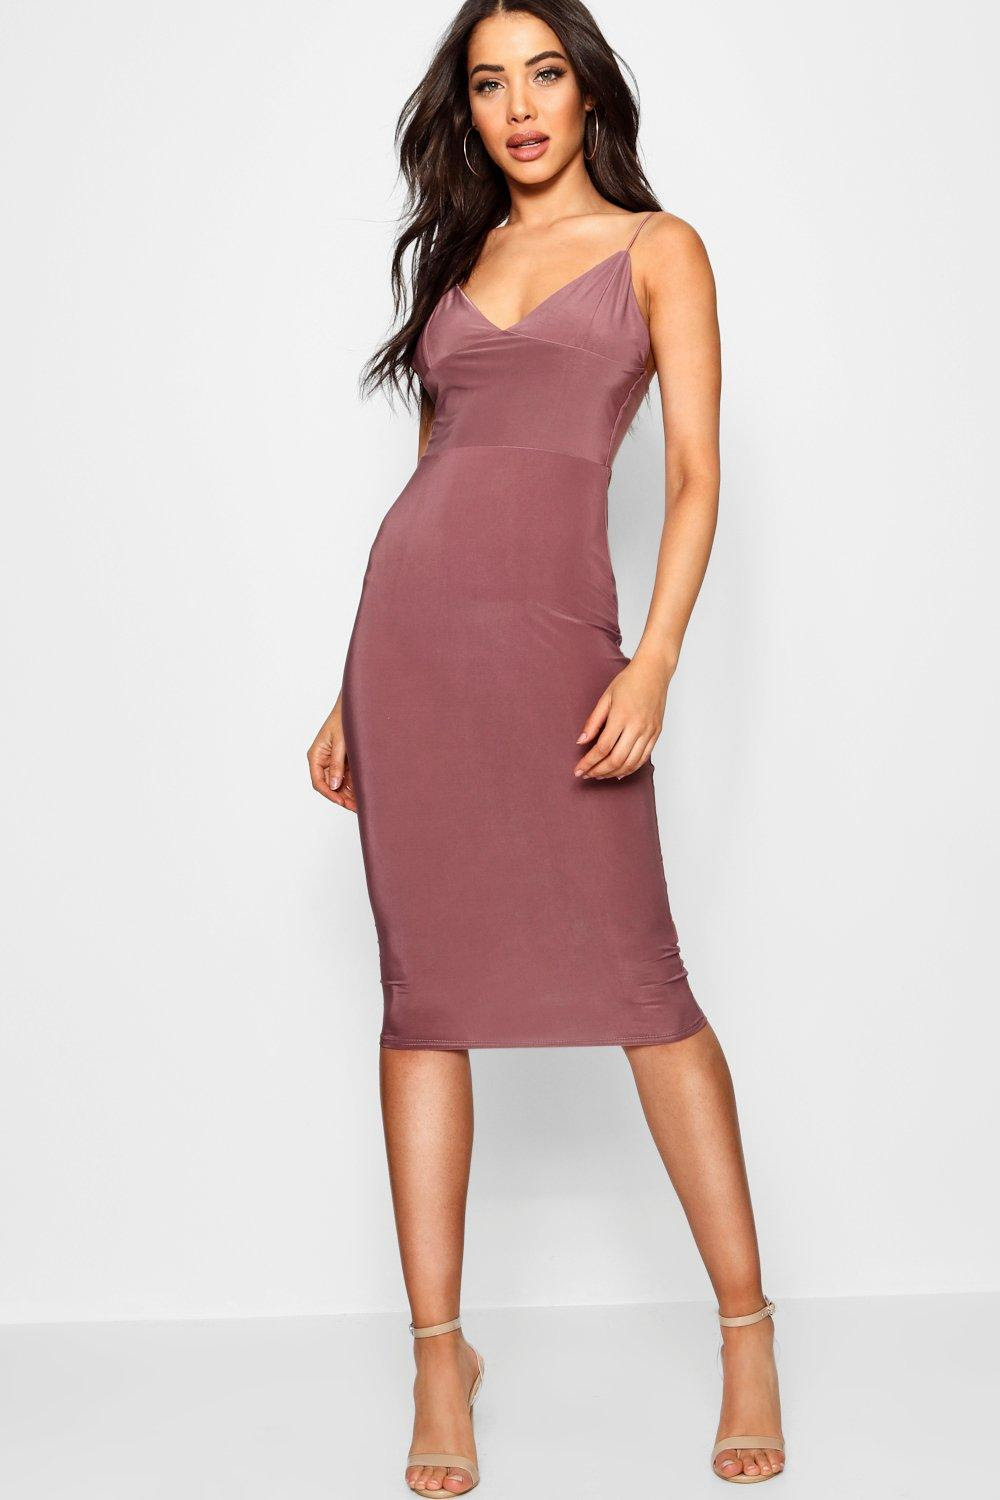 Midi what dress a is bodycon online